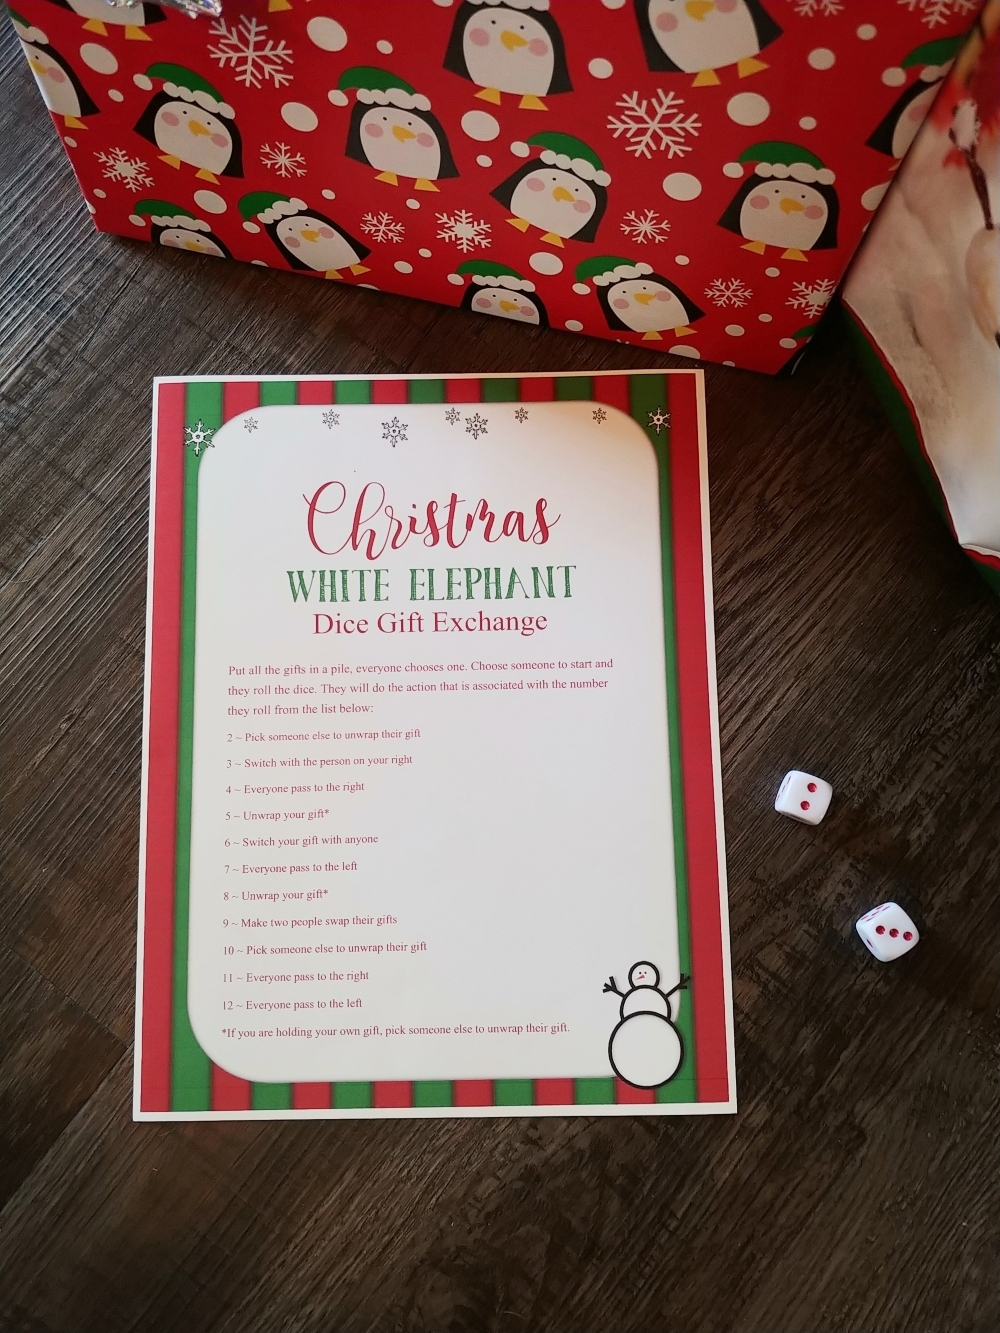 Christmas White Elephant Gift Exchange With a Twist!